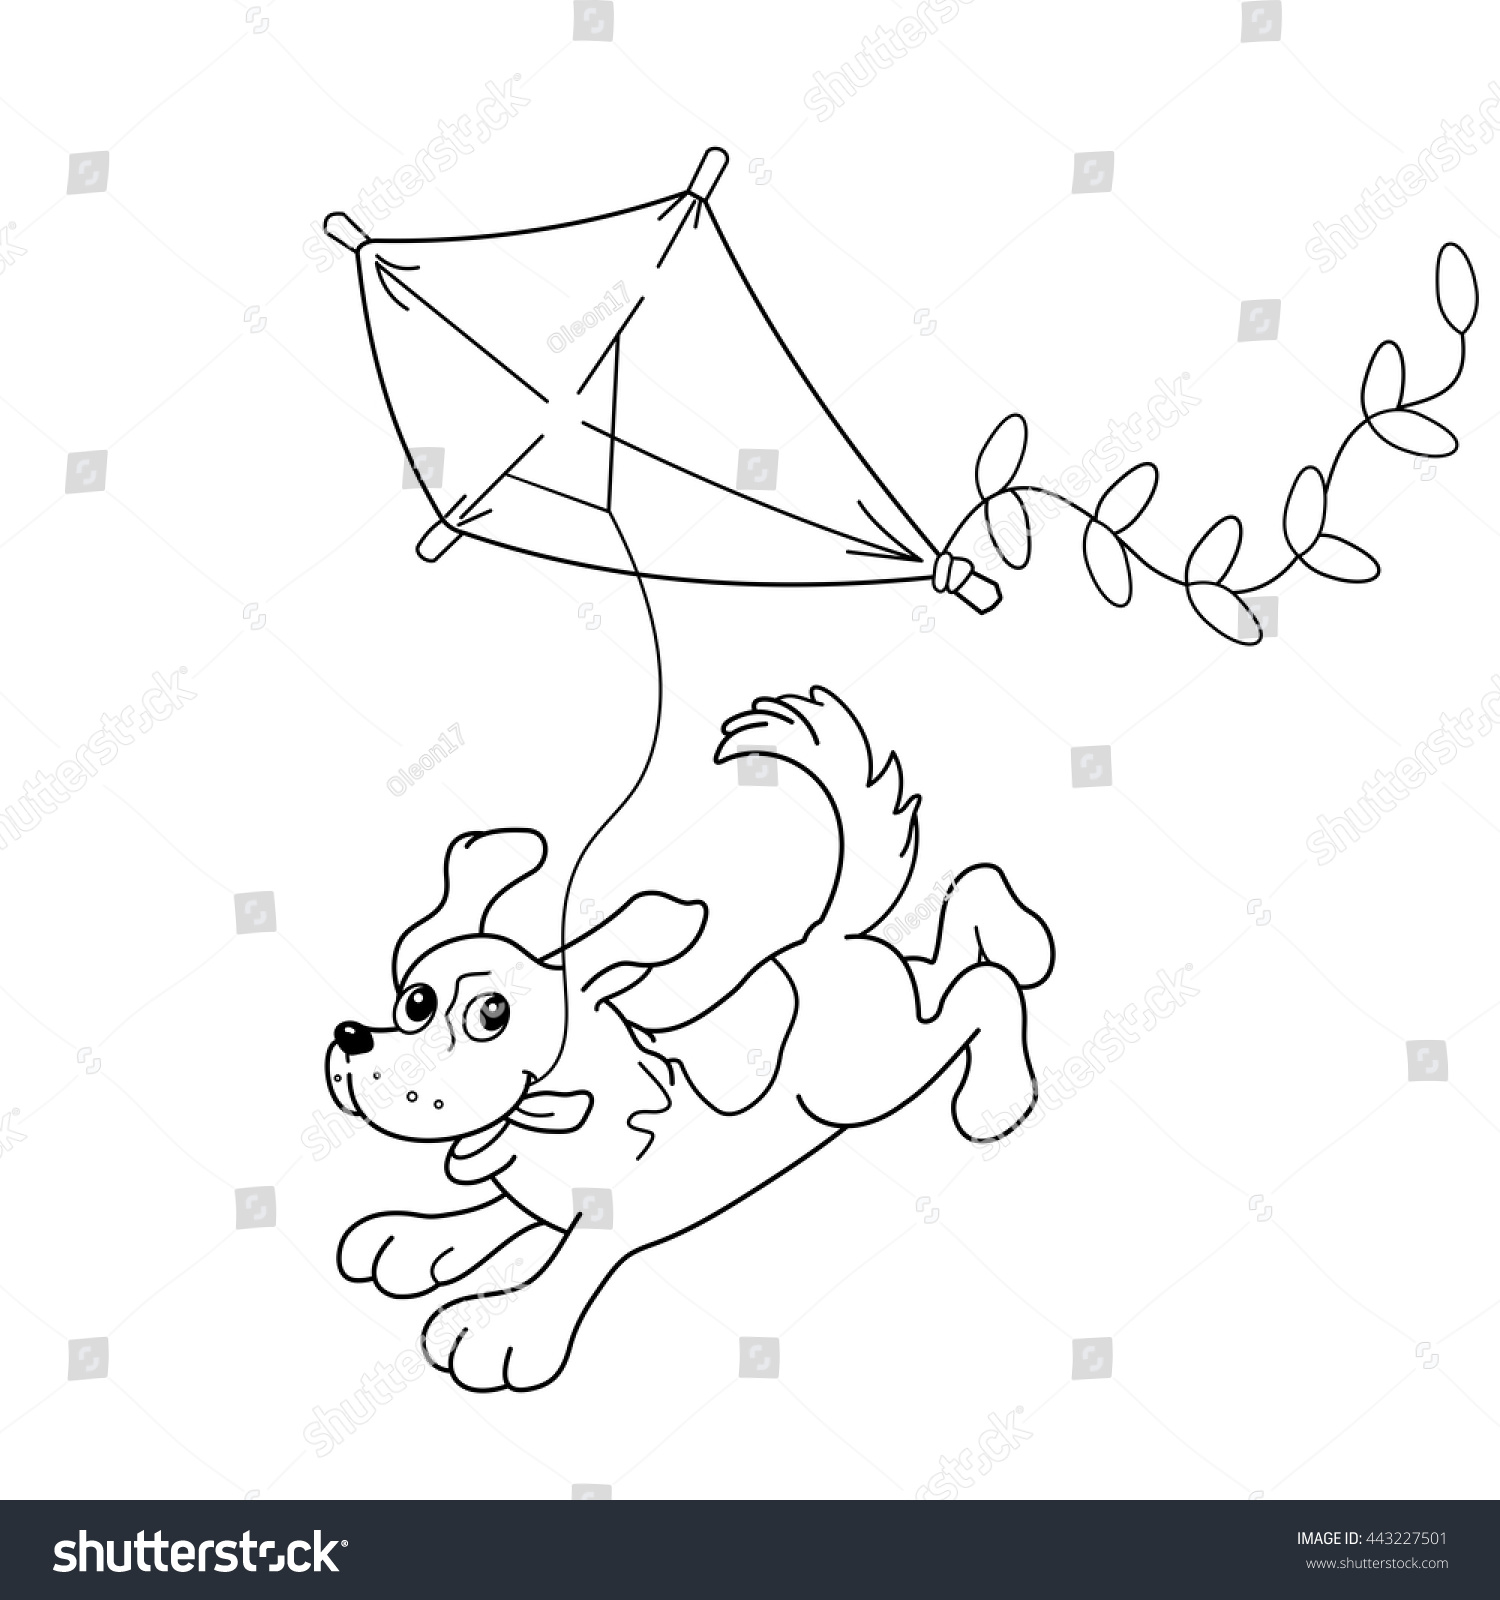 coloring page outline cartoon dog kite stock vector 443227501